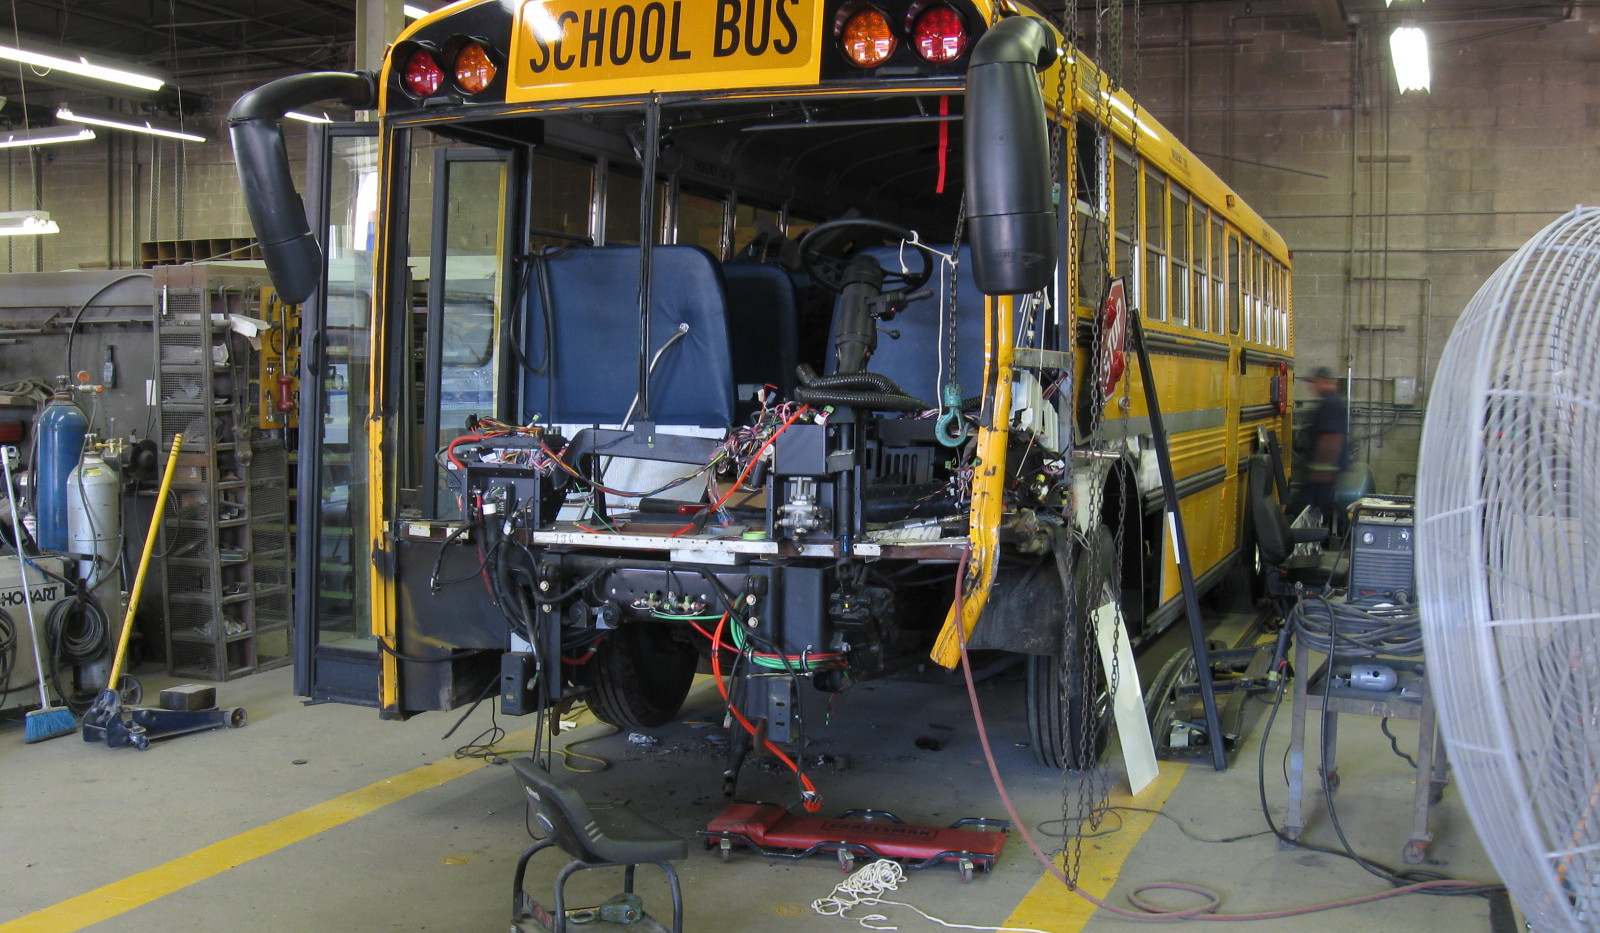 Bus Repair in Shop.JPG